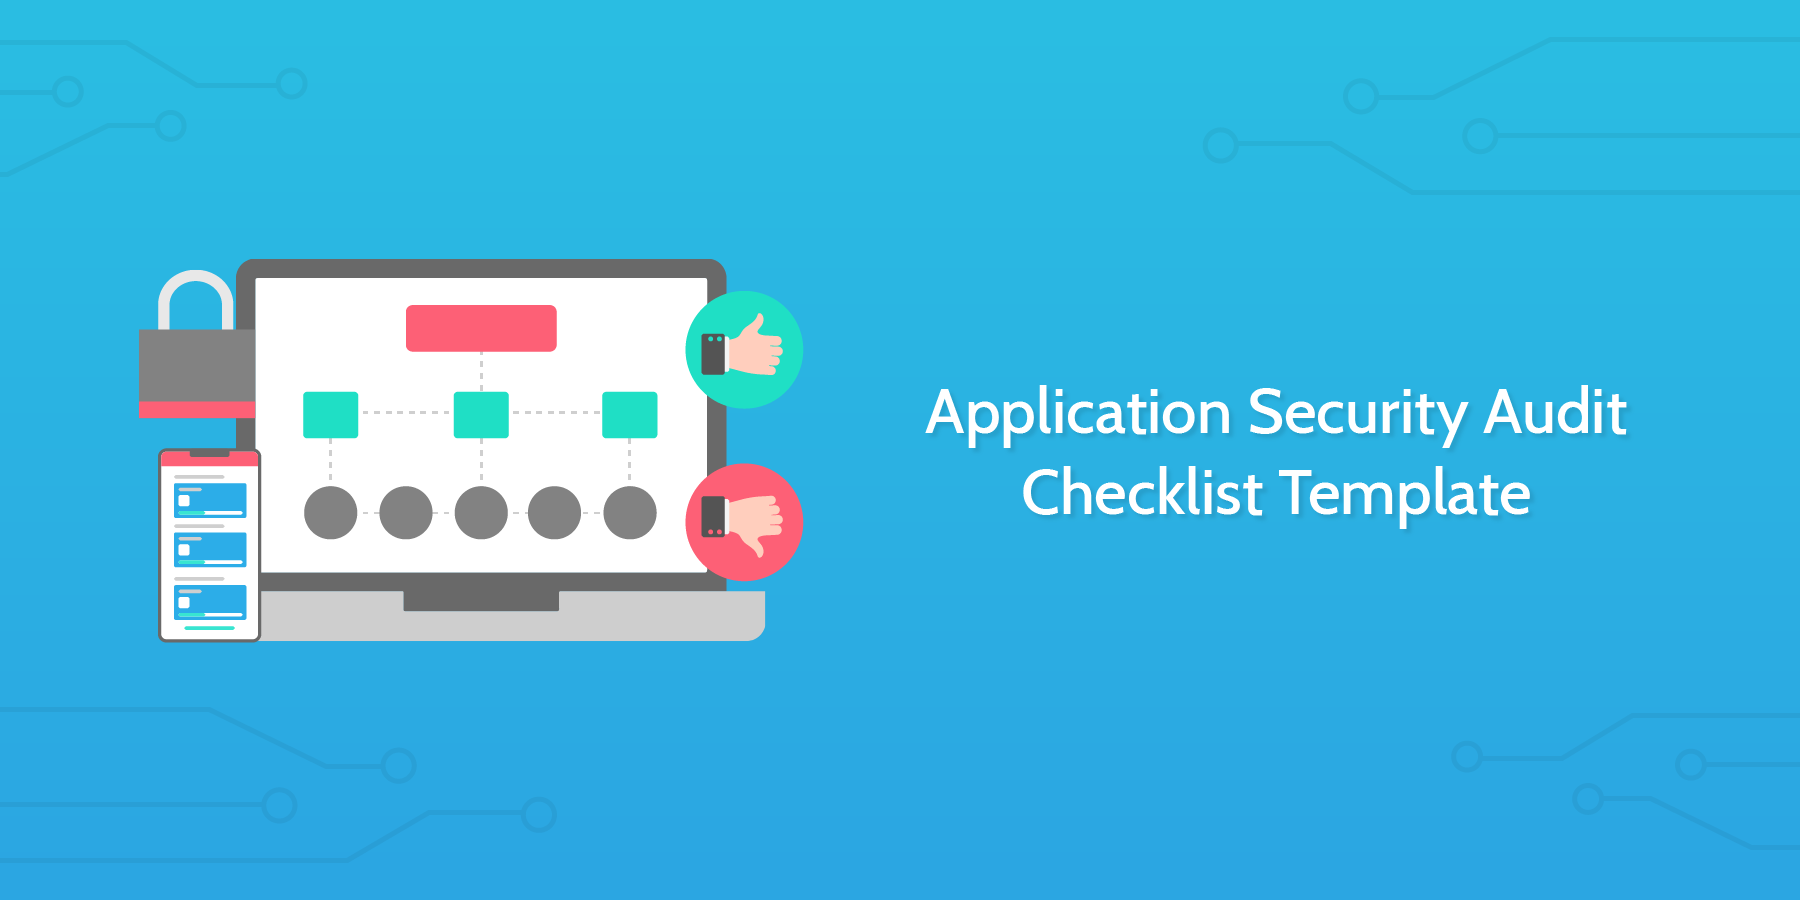 It Security Audit Checklist Template from ps-attachments.s3.amazonaws.com